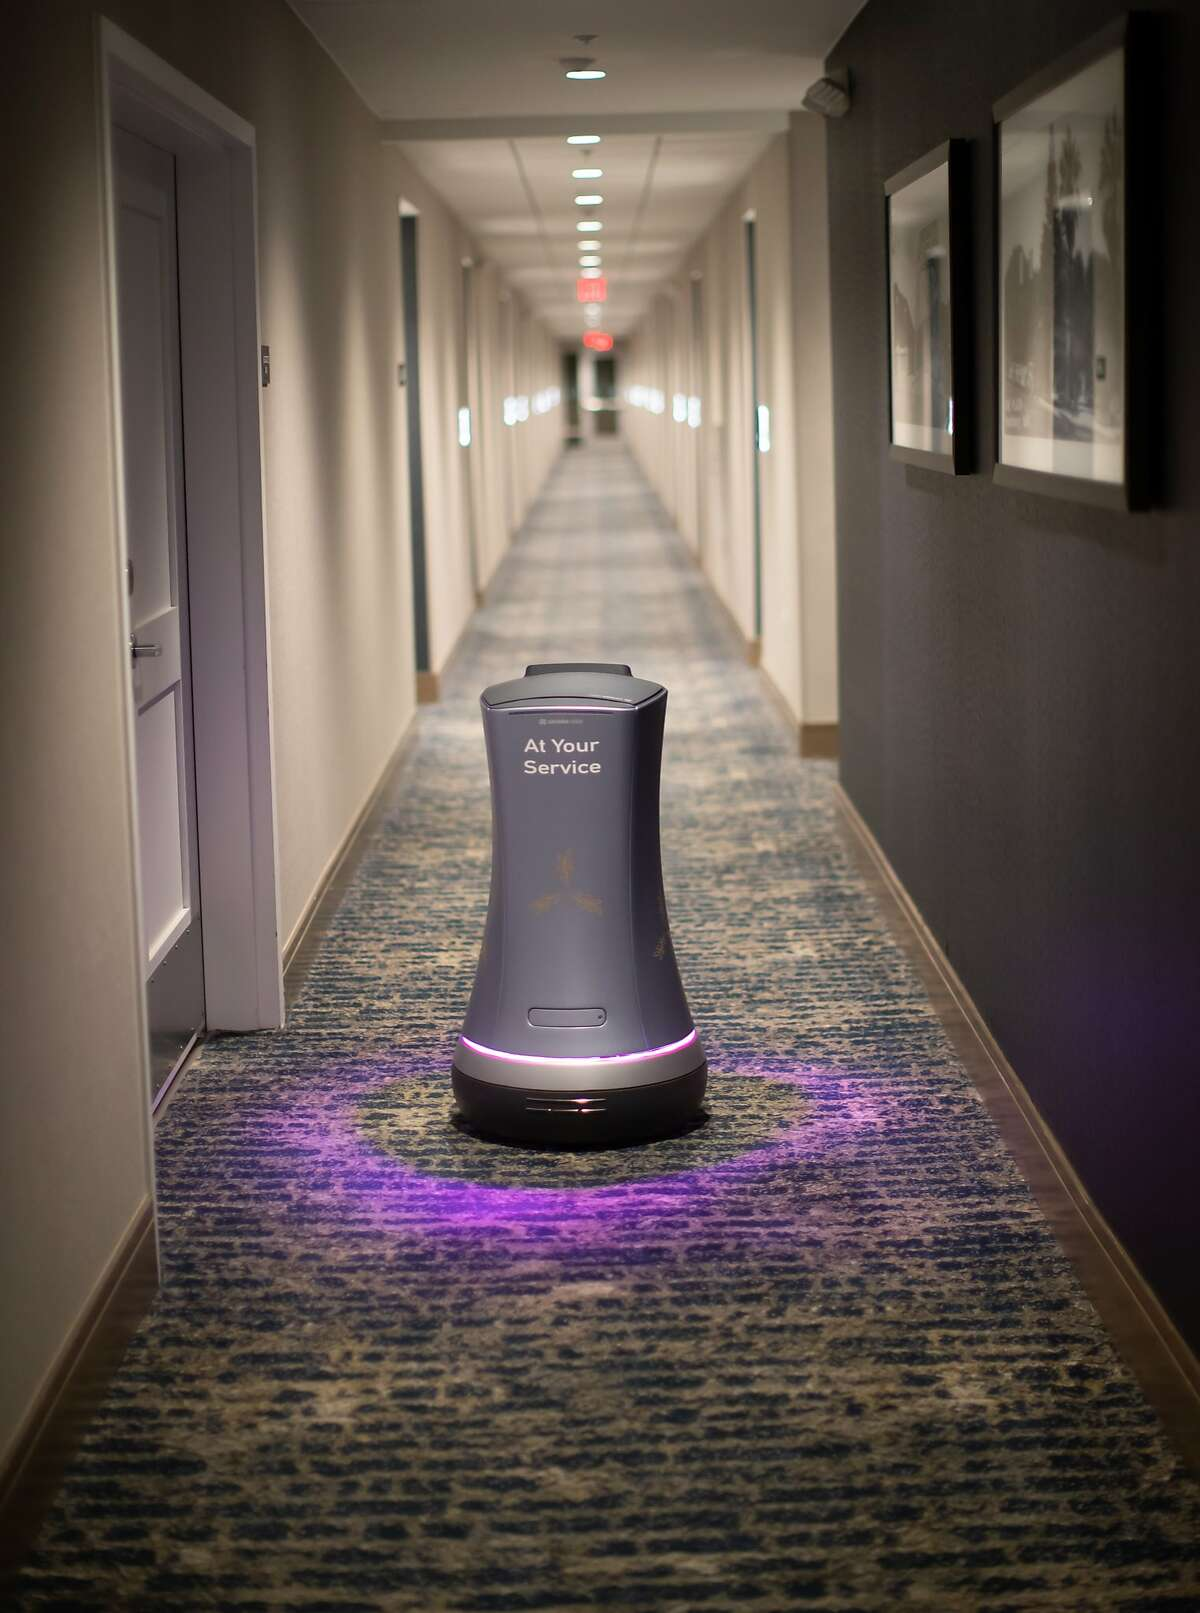 Rose the robot delivers a toothbrush to a room at The Hotel Trio on Monday, Jan. 7, 2019, in Healdsburg, Calif.